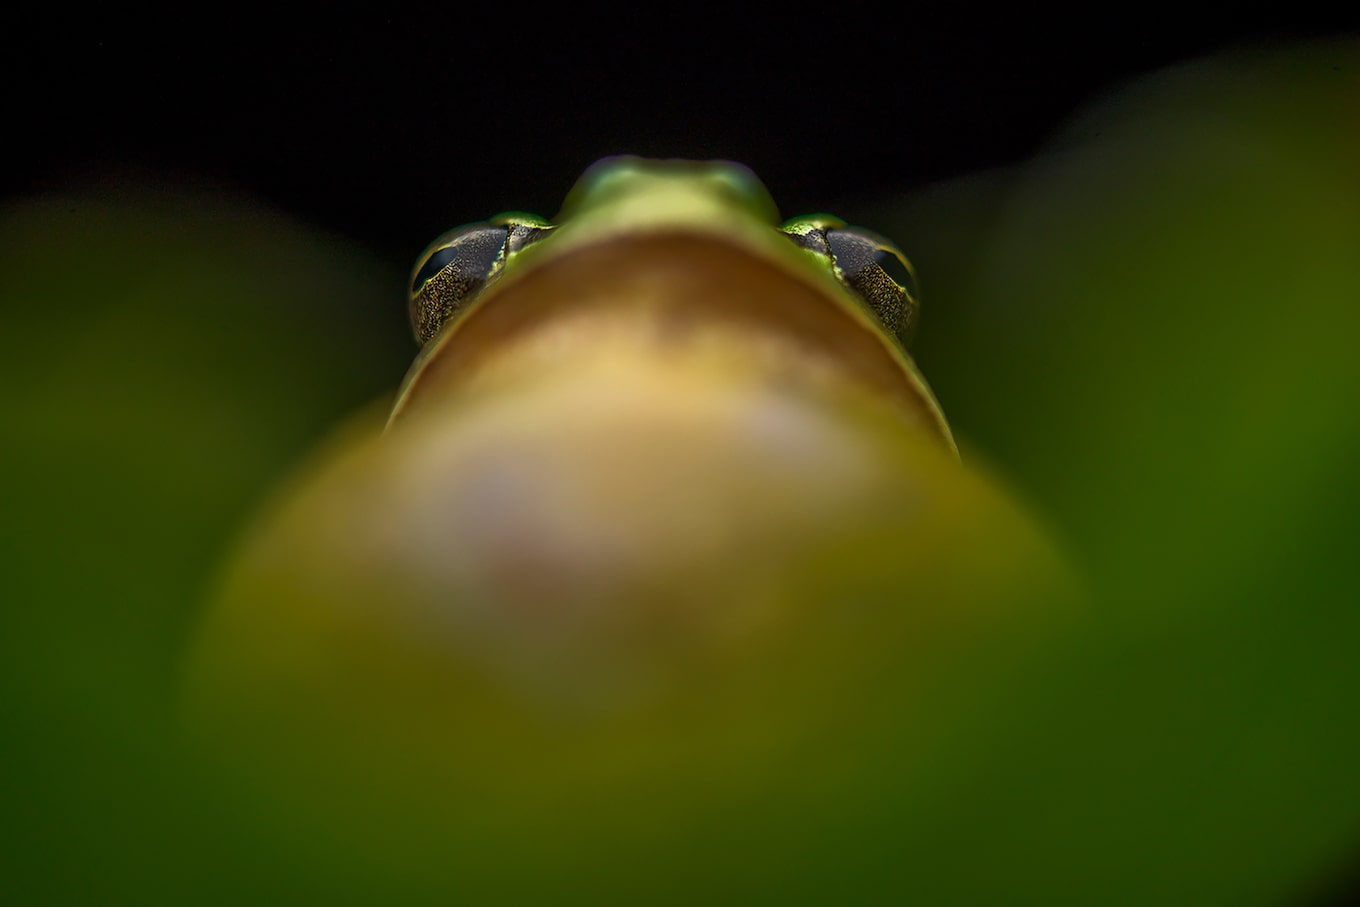 javier-aznar-sony-alpha-7RIII-extreme-close-up-of-frog